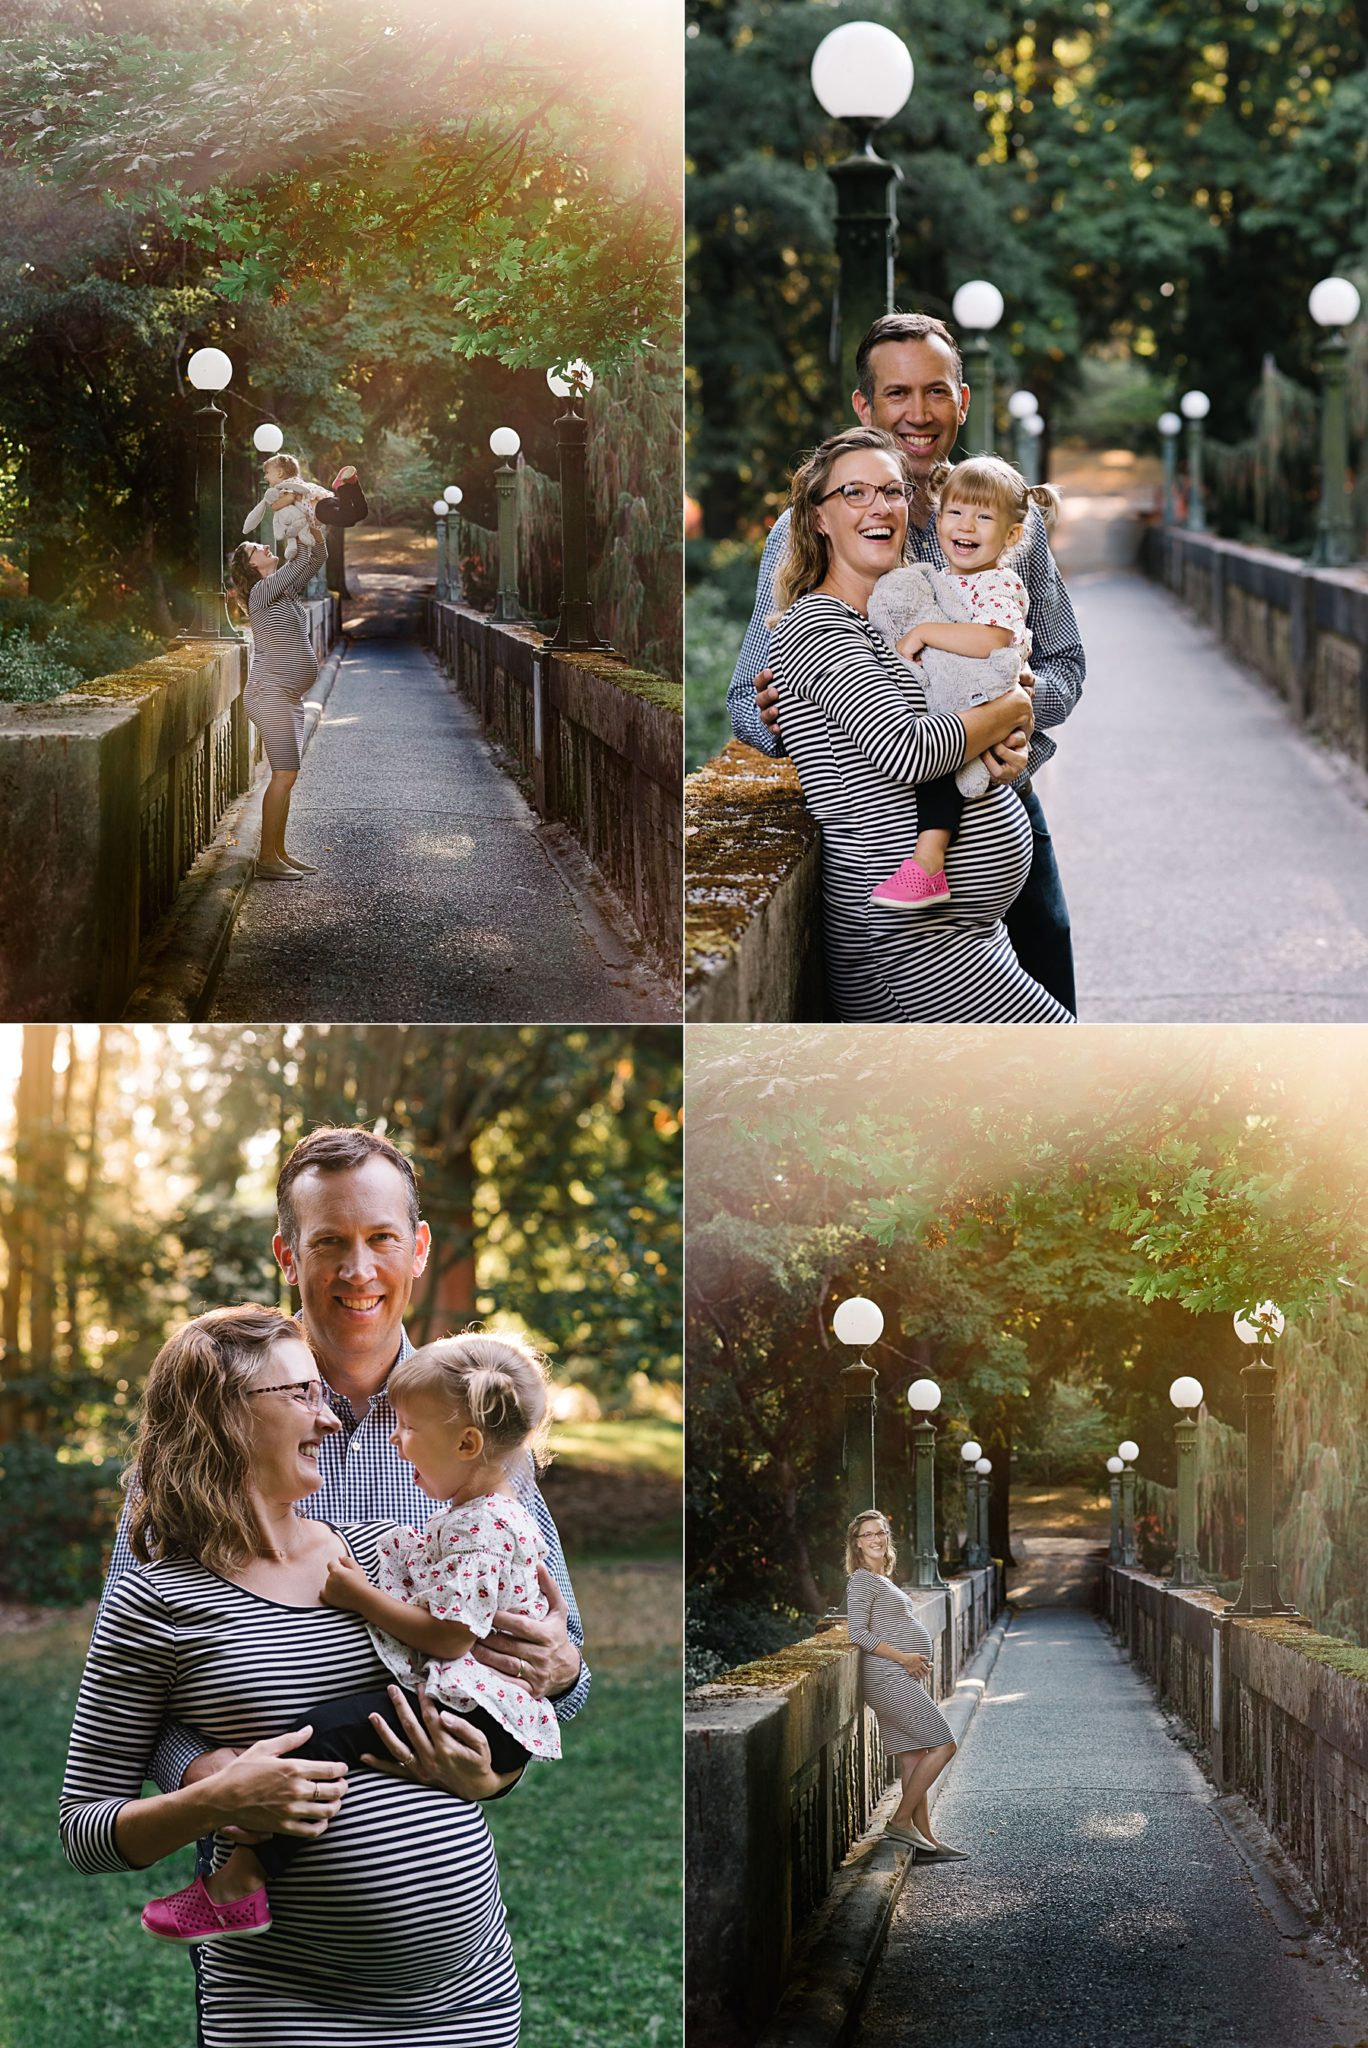 golden hour maternity portraits in washington park arboretum seattle